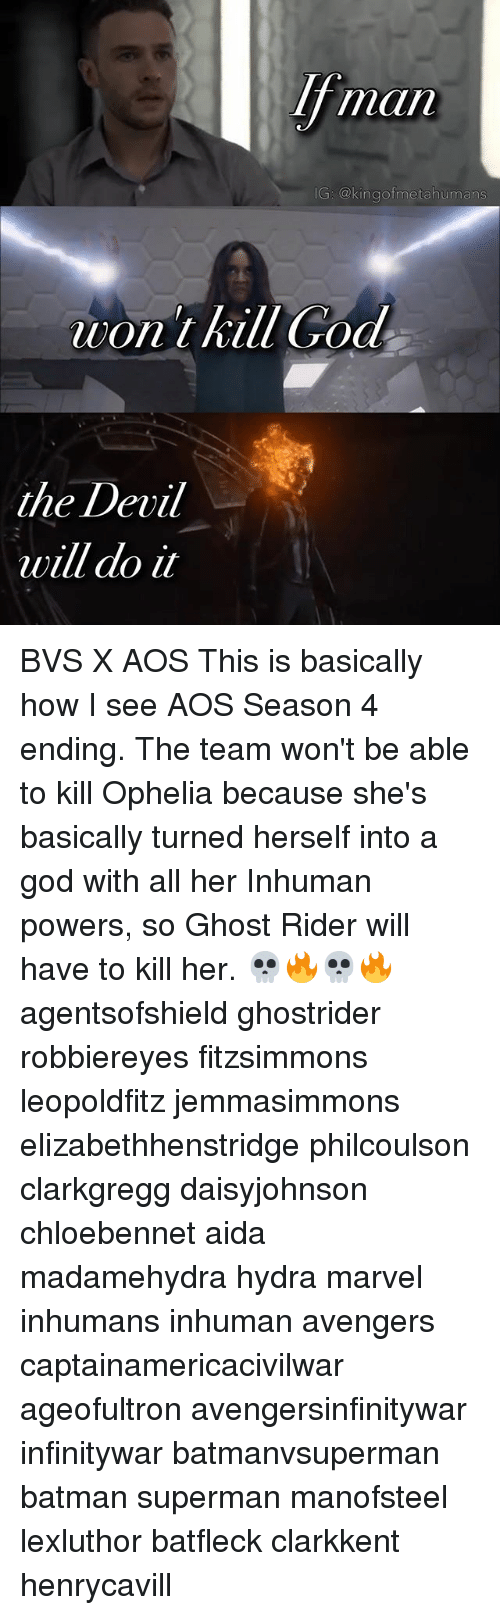 Batman, Ghost Rider , and God: man  IG: @kingof metahumans  on kill Cod  the Devil  will do it BVS X AOS This is basically how I see AOS Season 4 ending. The team won't be able to kill Ophelia because she's basically turned herself into a god with all her Inhuman powers, so Ghost Rider will have to kill her. 💀🔥💀🔥 agentsofshield ghostrider robbiereyes fitzsimmons leopoldfitz jemmasimmons elizabethhenstridge philcoulson clarkgregg daisyjohnson chloebennet aida madamehydra hydra marvel inhumans inhuman avengers captainamericacivilwar ageofultron avengersinfinitywar infinitywar batmanvsuperman batman superman manofsteel lexluthor batfleck clarkkent henrycavill